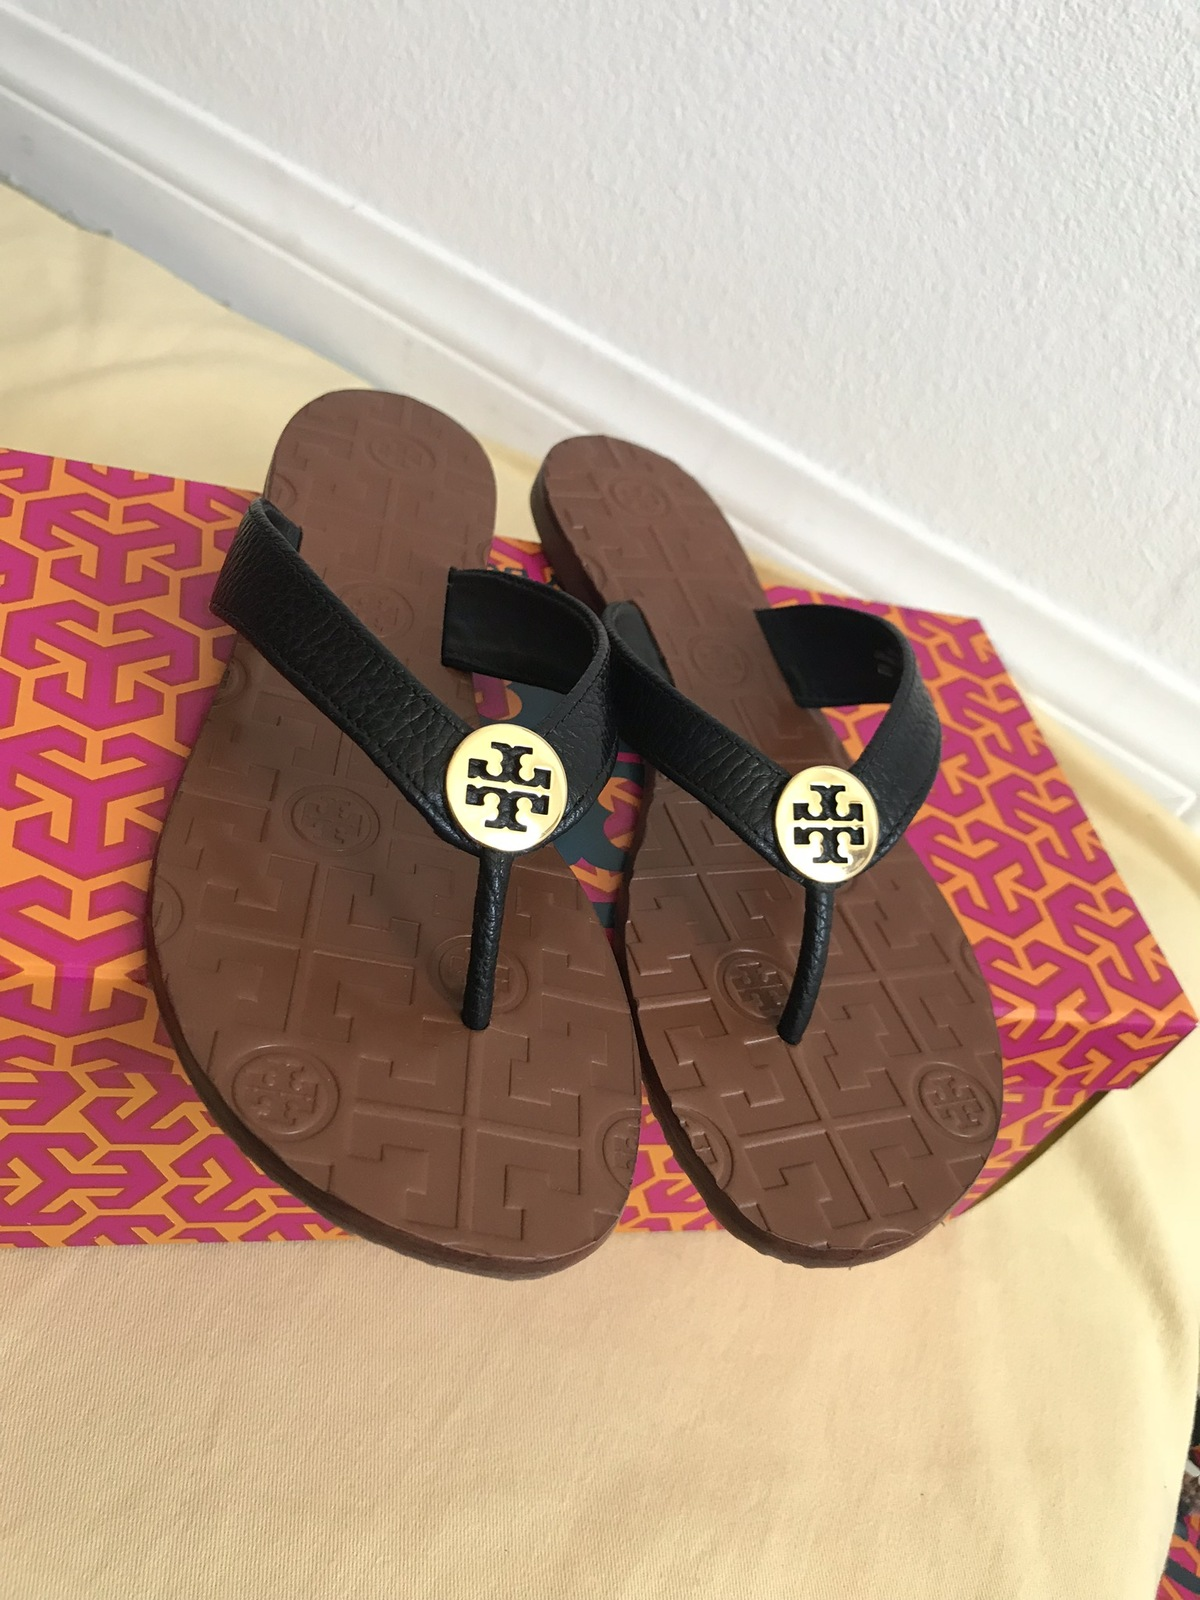 ecf7de5d0 size 7M NIB TORY BURCH Black  Gold Thora Thong Leather Sandals